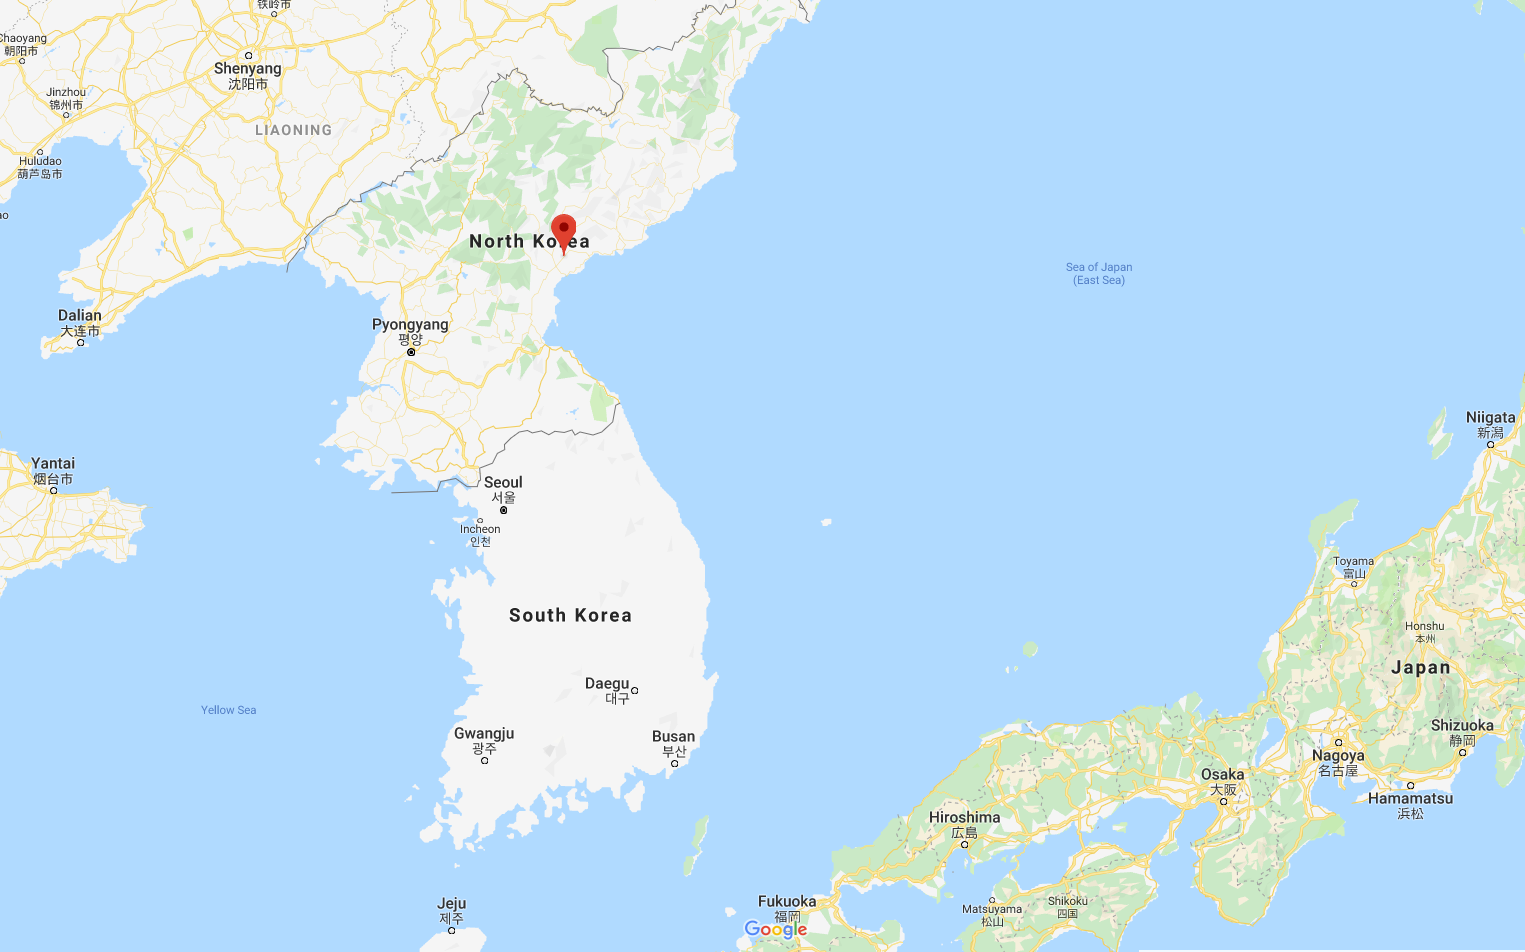 North Korea have fired off another round of ballistic missile tests Saturday morning NK time.